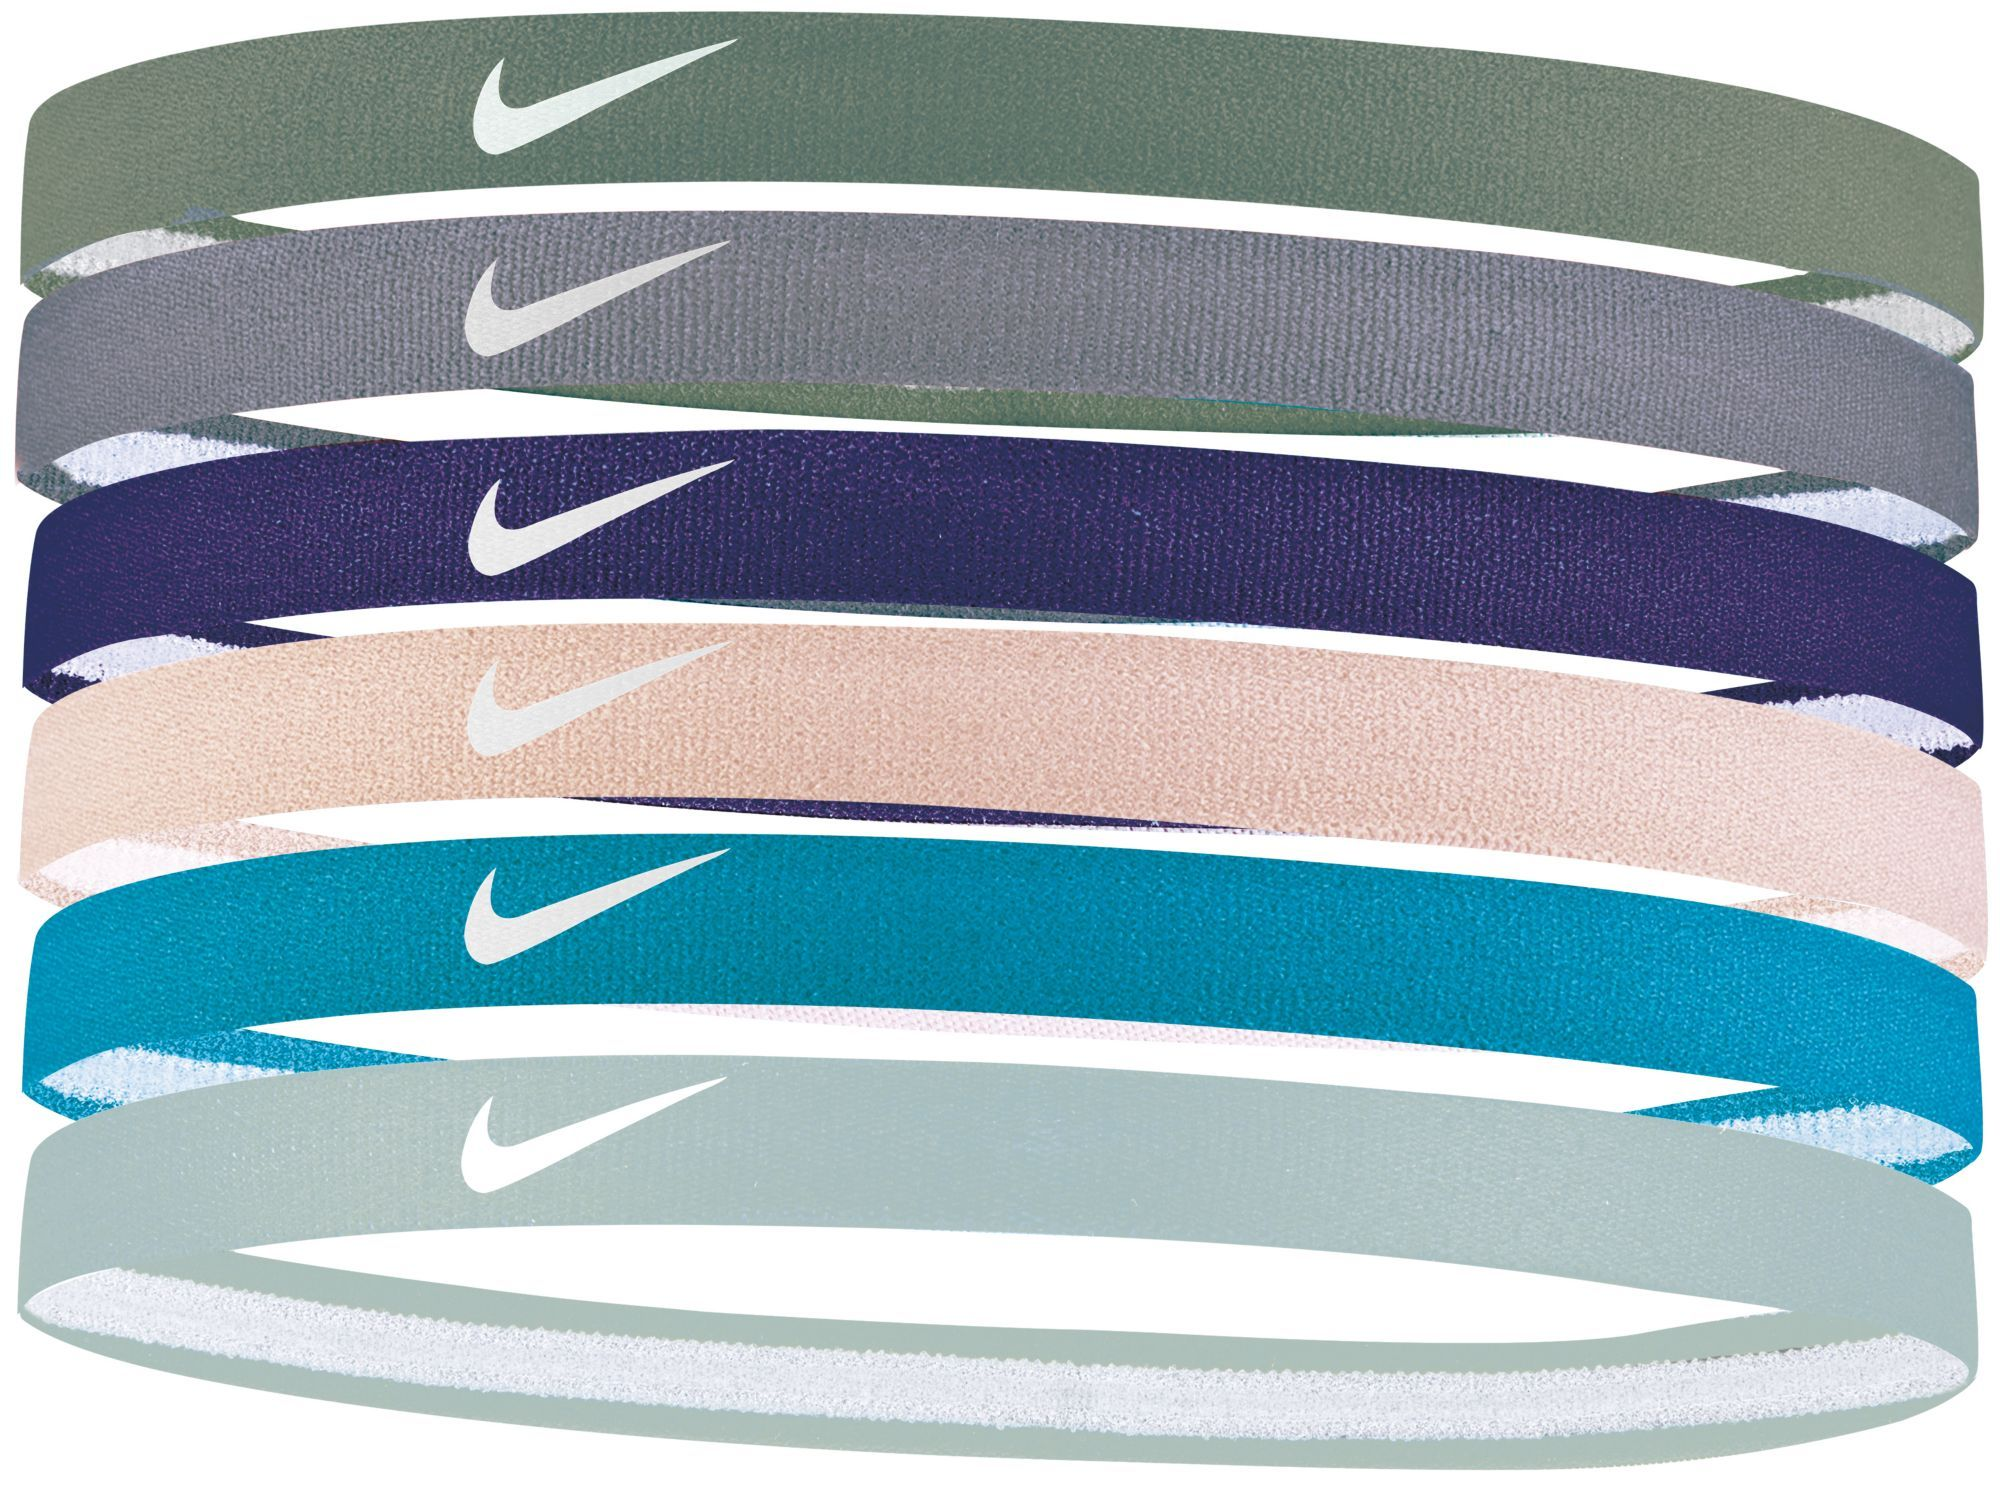 8Pk Women's Under Armour Skinny Headbands